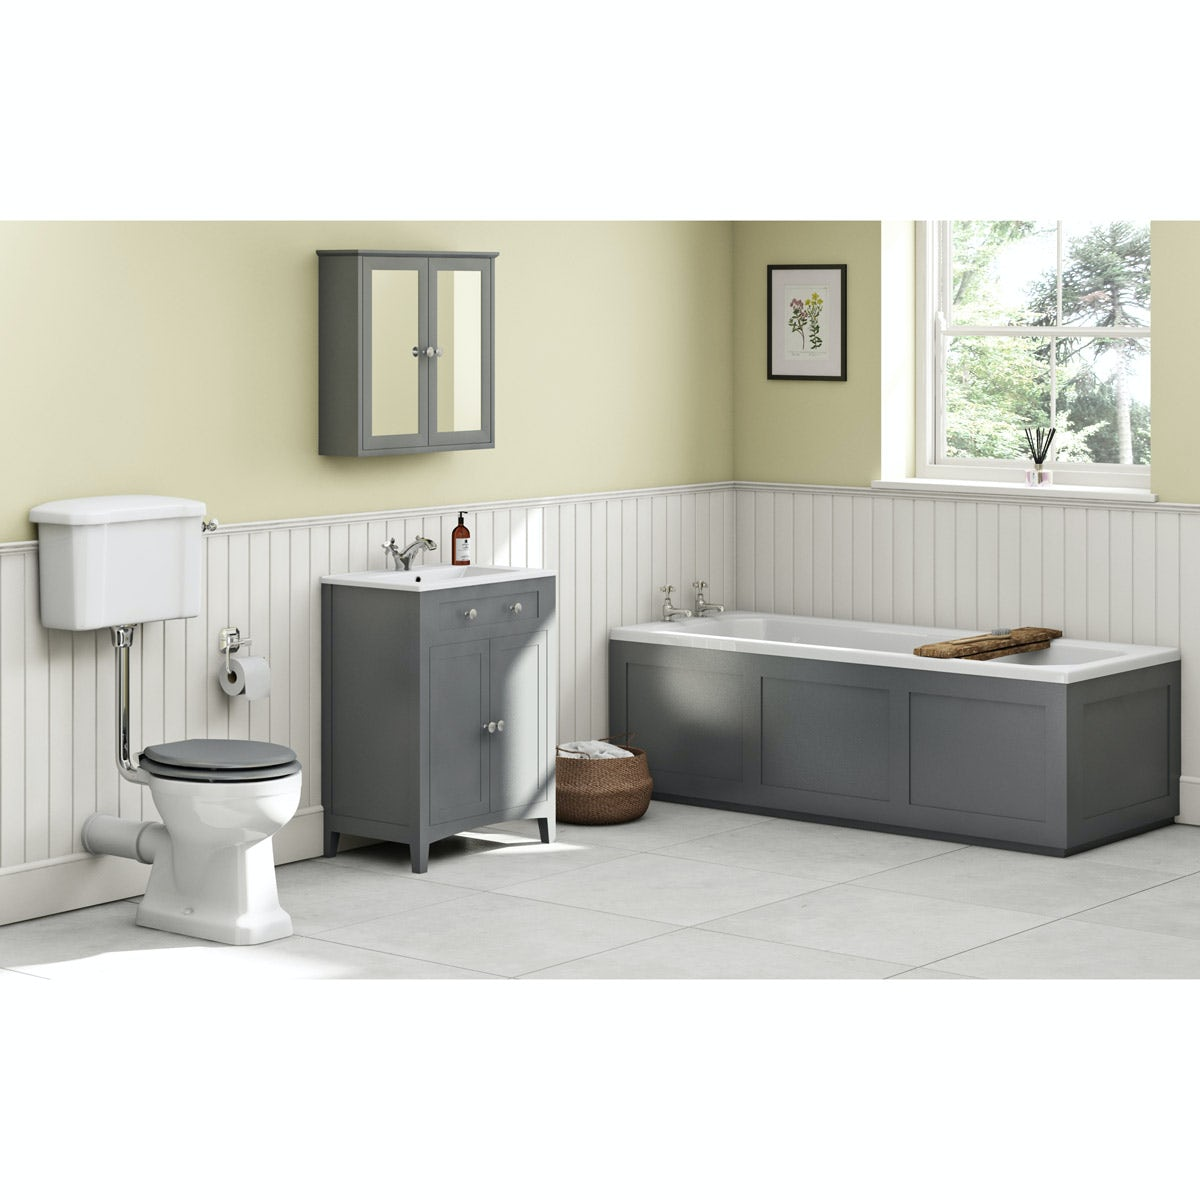 Camberley Satin Grey Low Level Furniture Suite With Straight Bath 1700 X